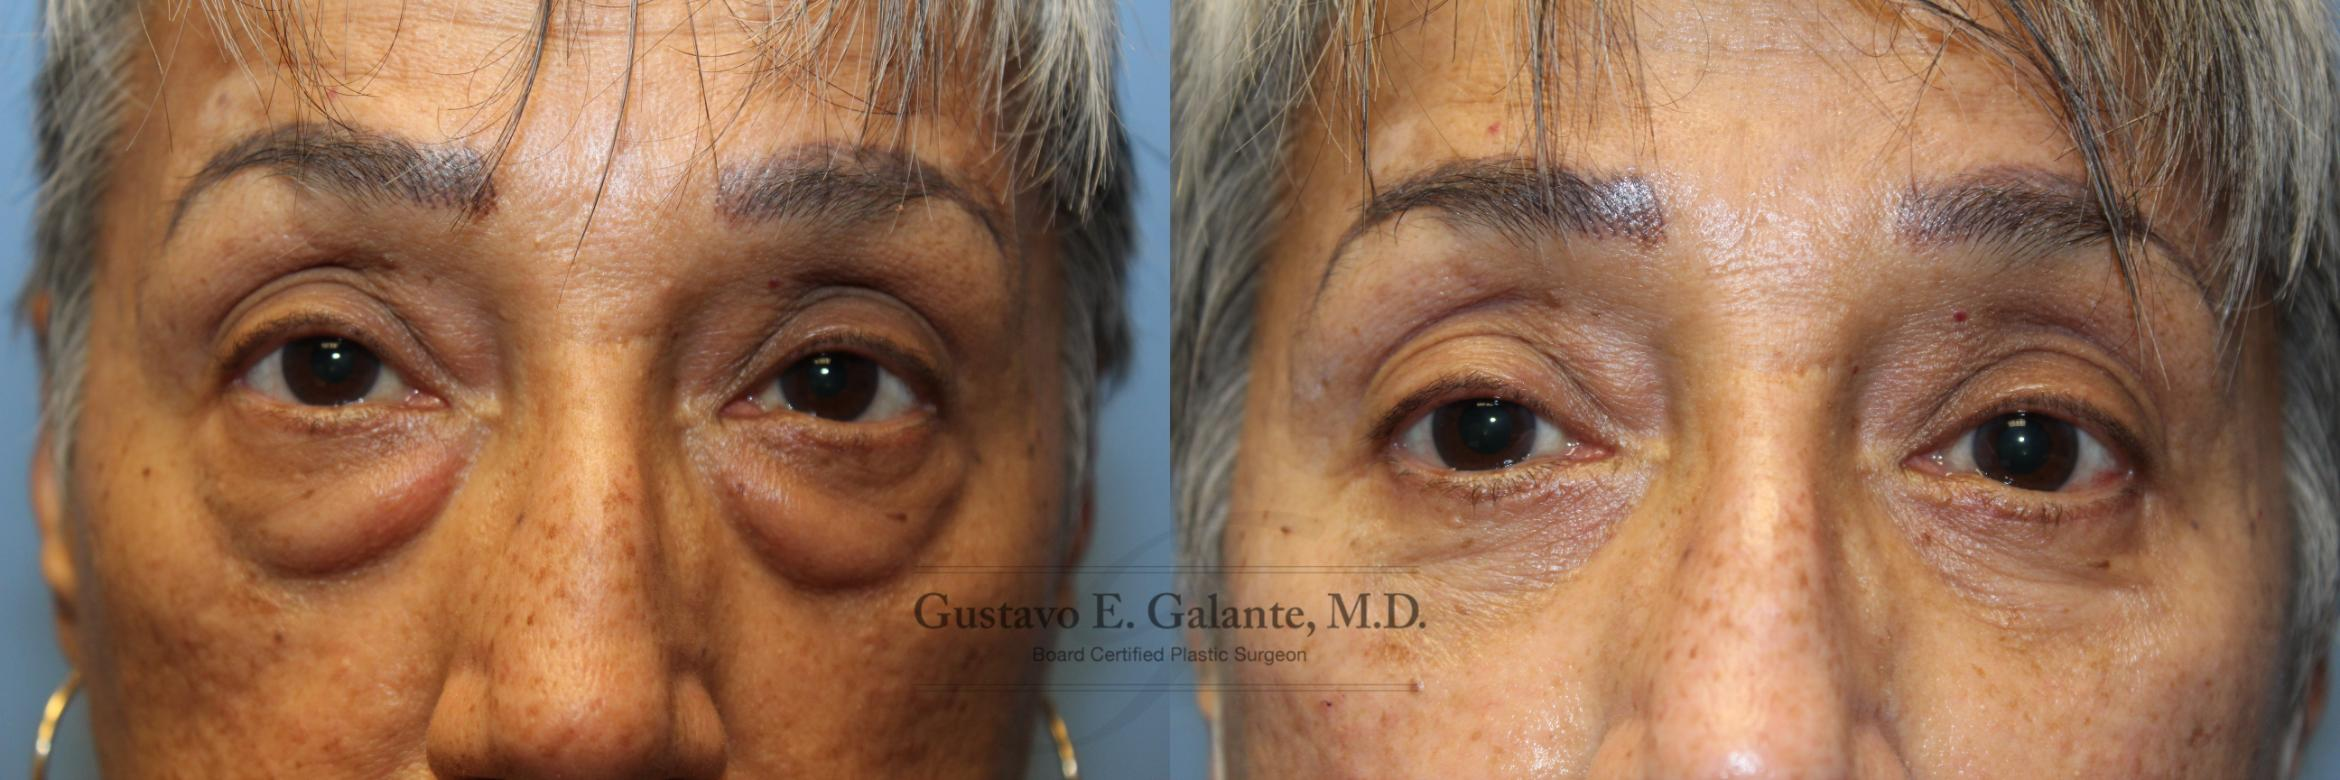 Eyelid Surgery (Blepharoplasty) Case 212 Before & After Front | Valparaiso & Schererville, IN | Gustavo E. Galante, MD